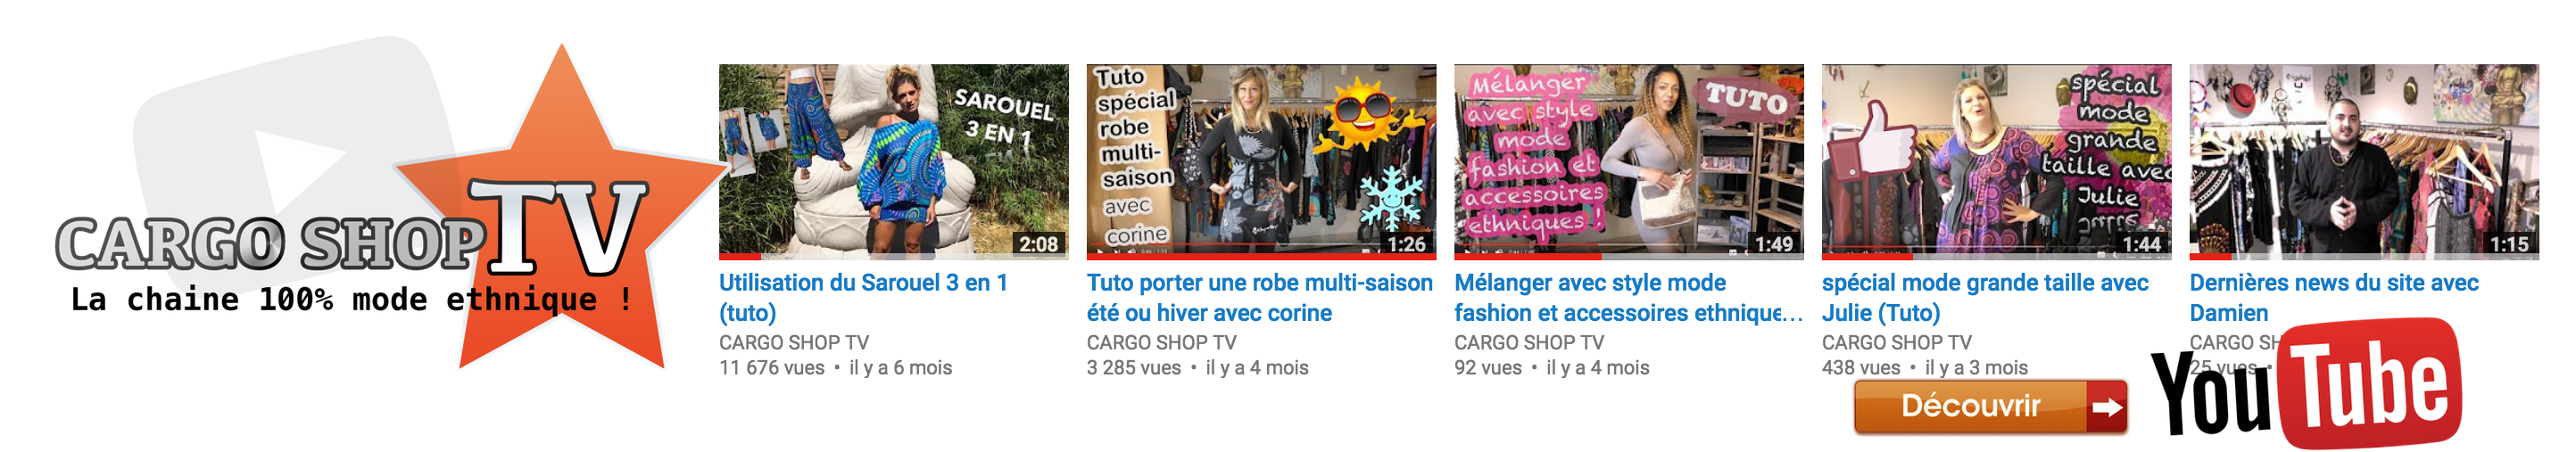 chaine_youtube_cargo_shop